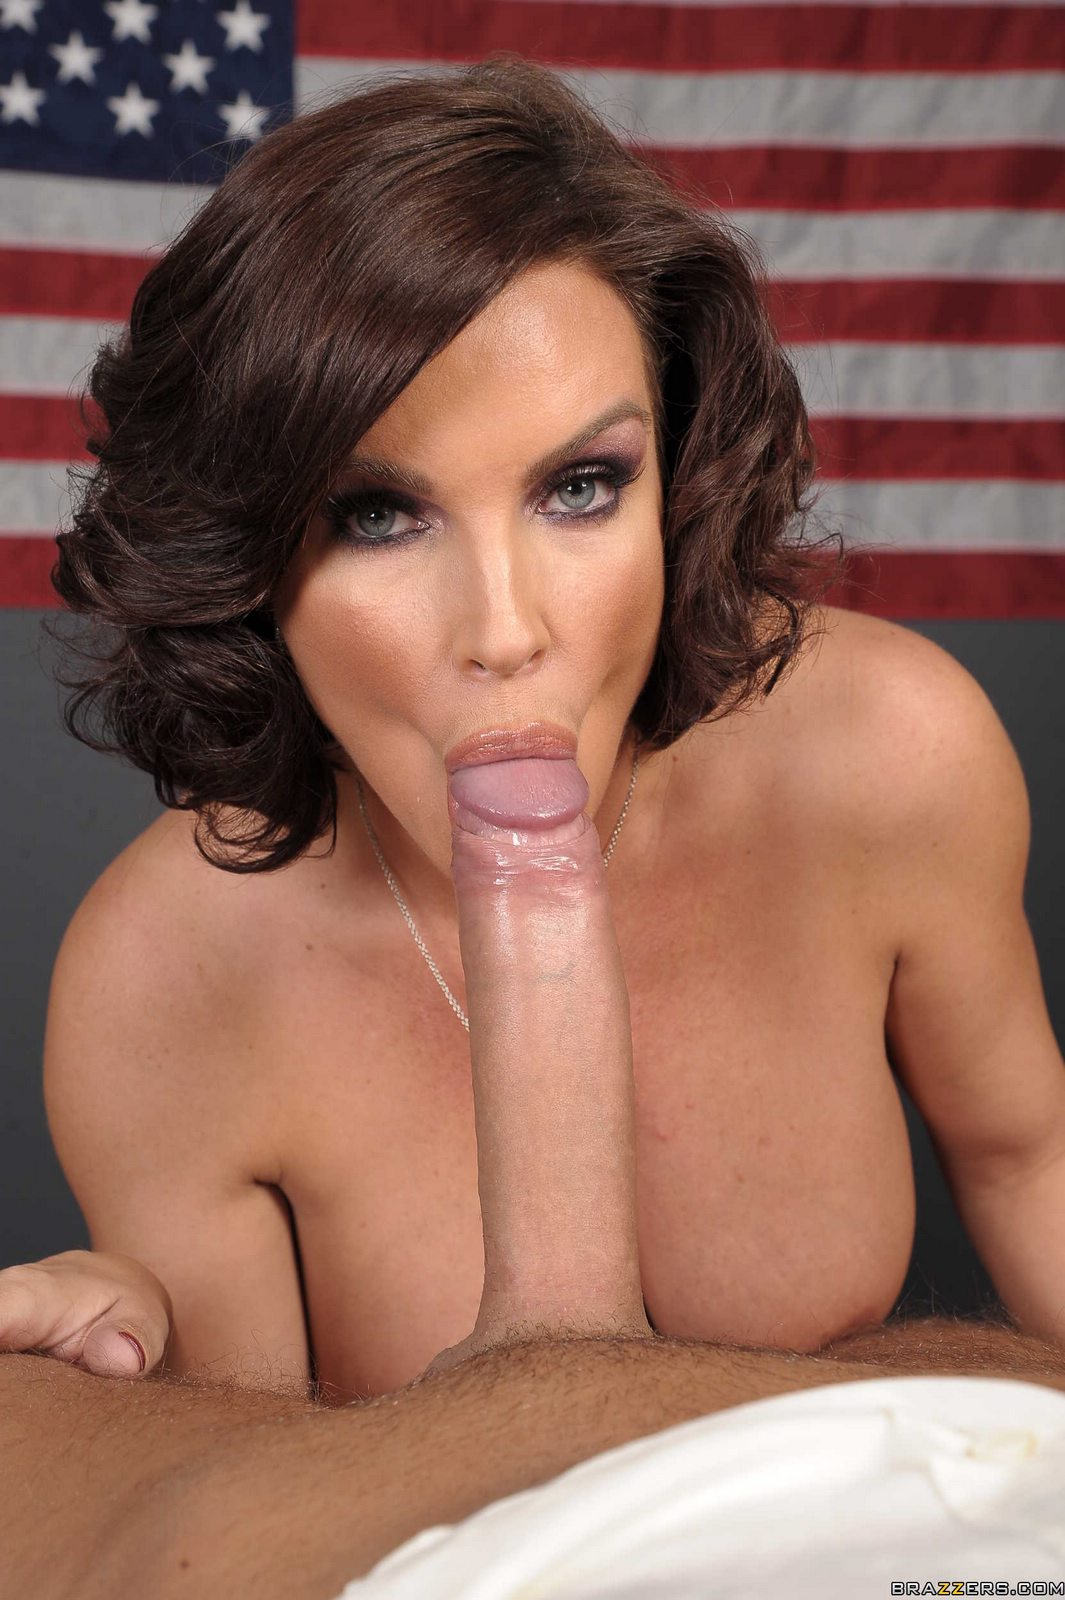 Dava foxx sucks big dicks and fucked in the gloryhole 2